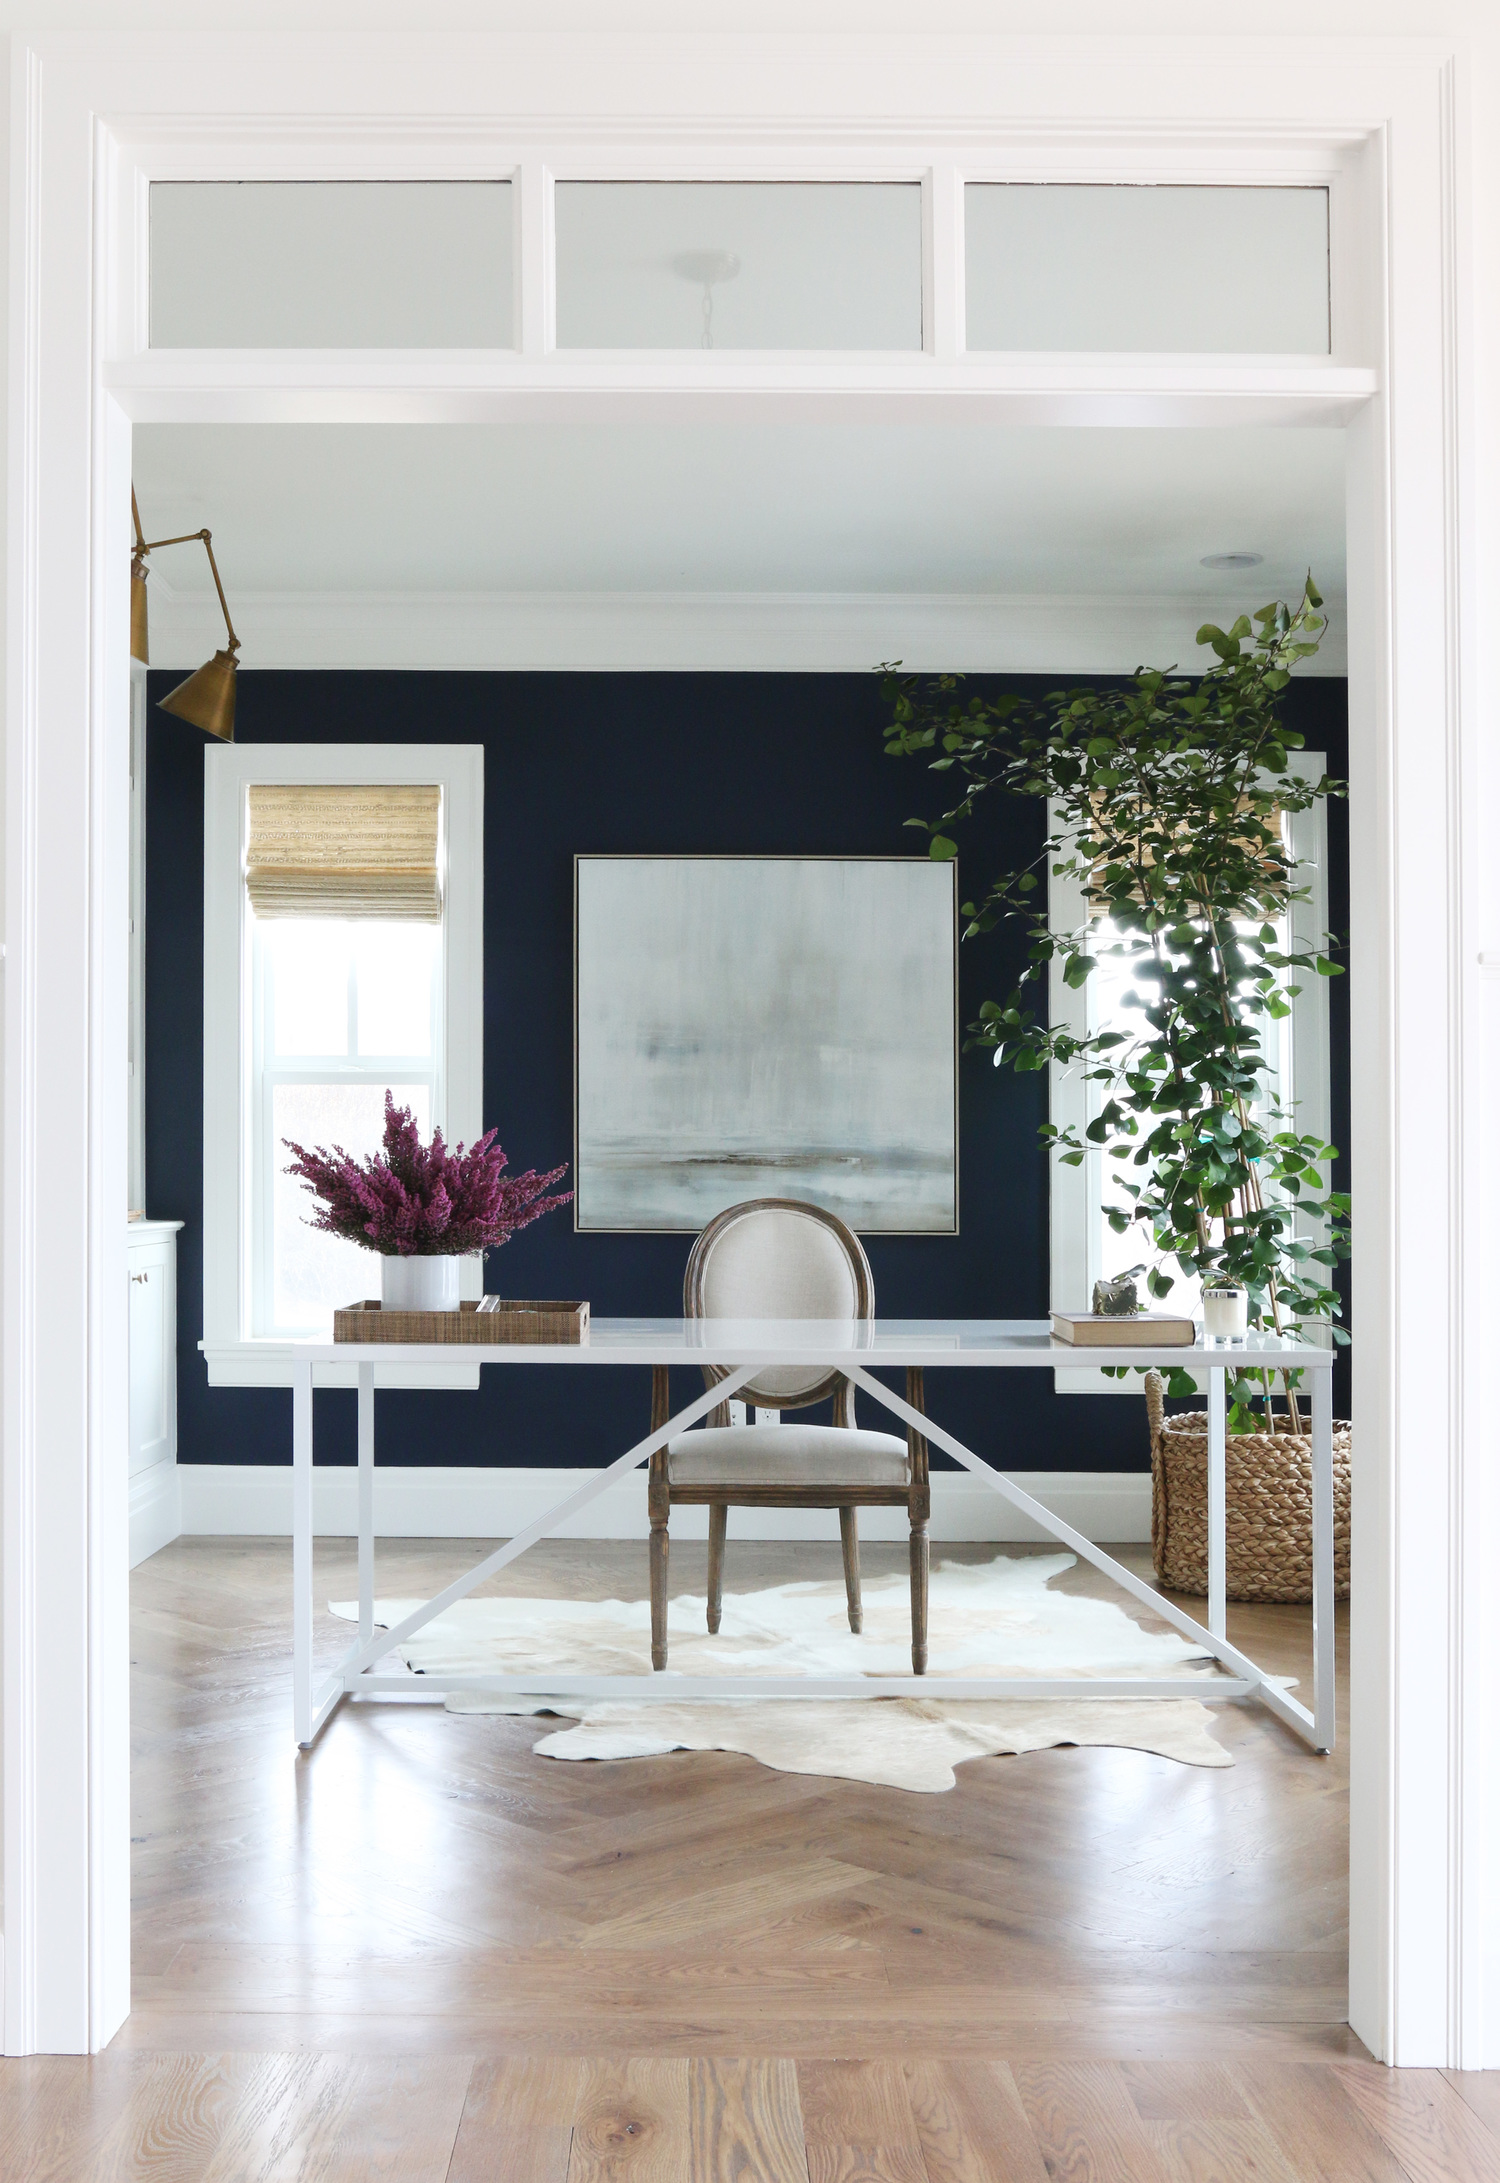 """Mistake #5:White Walls - This will probably be my most controversial """"mistake."""" But don't take """"white walls"""" to mean no white at all. I love white and in the right spaces it really is the best color (like the foyer from Mistake #1 above), but so much drama and dimension can be added to a home with a dark hue like navy blue or even a muted grey. When it came to decide what color to paint the inside of our rental I was sure white was the right choice because of the small size of home, but after further thought and research I decided on Behr's Silver Drop, a neutral muted grey. I'm so glad we went with Silver Drop over white; it makes our small rental feel both bigger and cozier. I also love that our white/light colored furniture and decor doesn't just disappear into the walls. I would 100% use Silver Drop again in our next home, but I can't wait to have the freedom to have a moody office or bathroom and play around with wallpaper too! So which team are you? White or color?"""